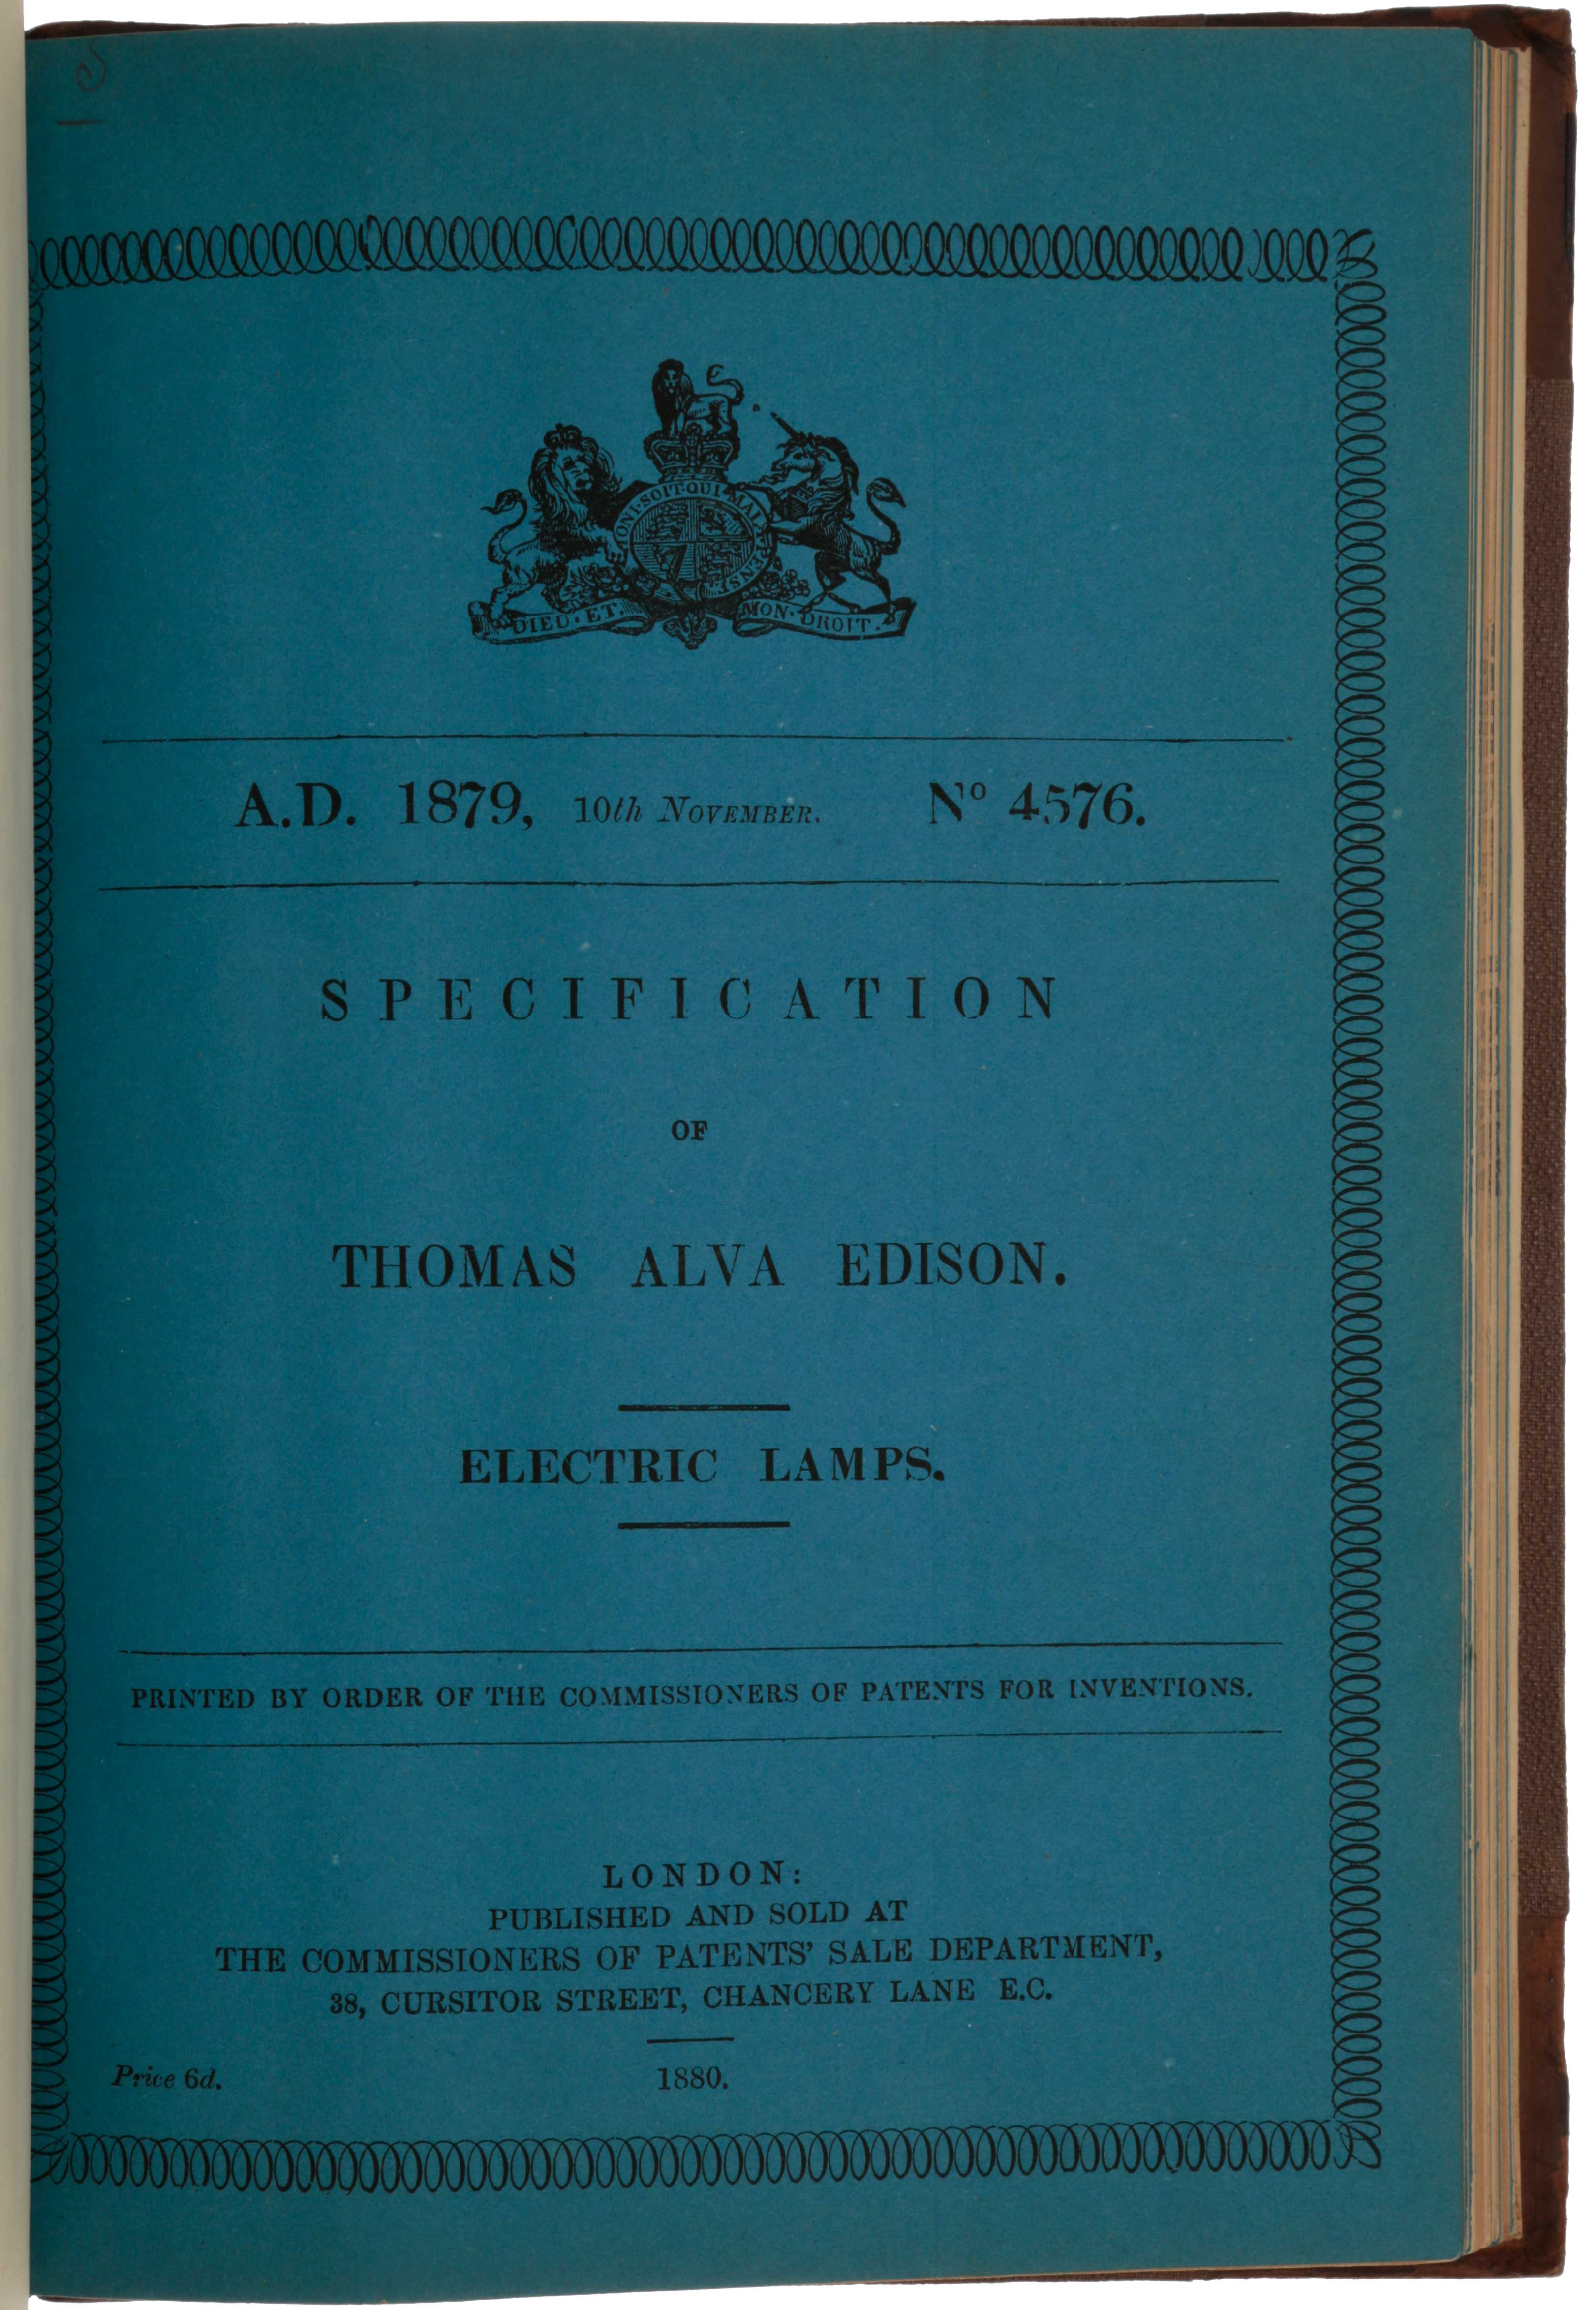 Specification of Thomas Alva Edison. Electric lamps. No. 4576, 10 November, 1879. [Bound with thirteen other patents, including eight more by Edison, most concerned with electric lighting, the design and manufacture of light bulbs, and the supply of electricity]. Thomas Alva EDISON.